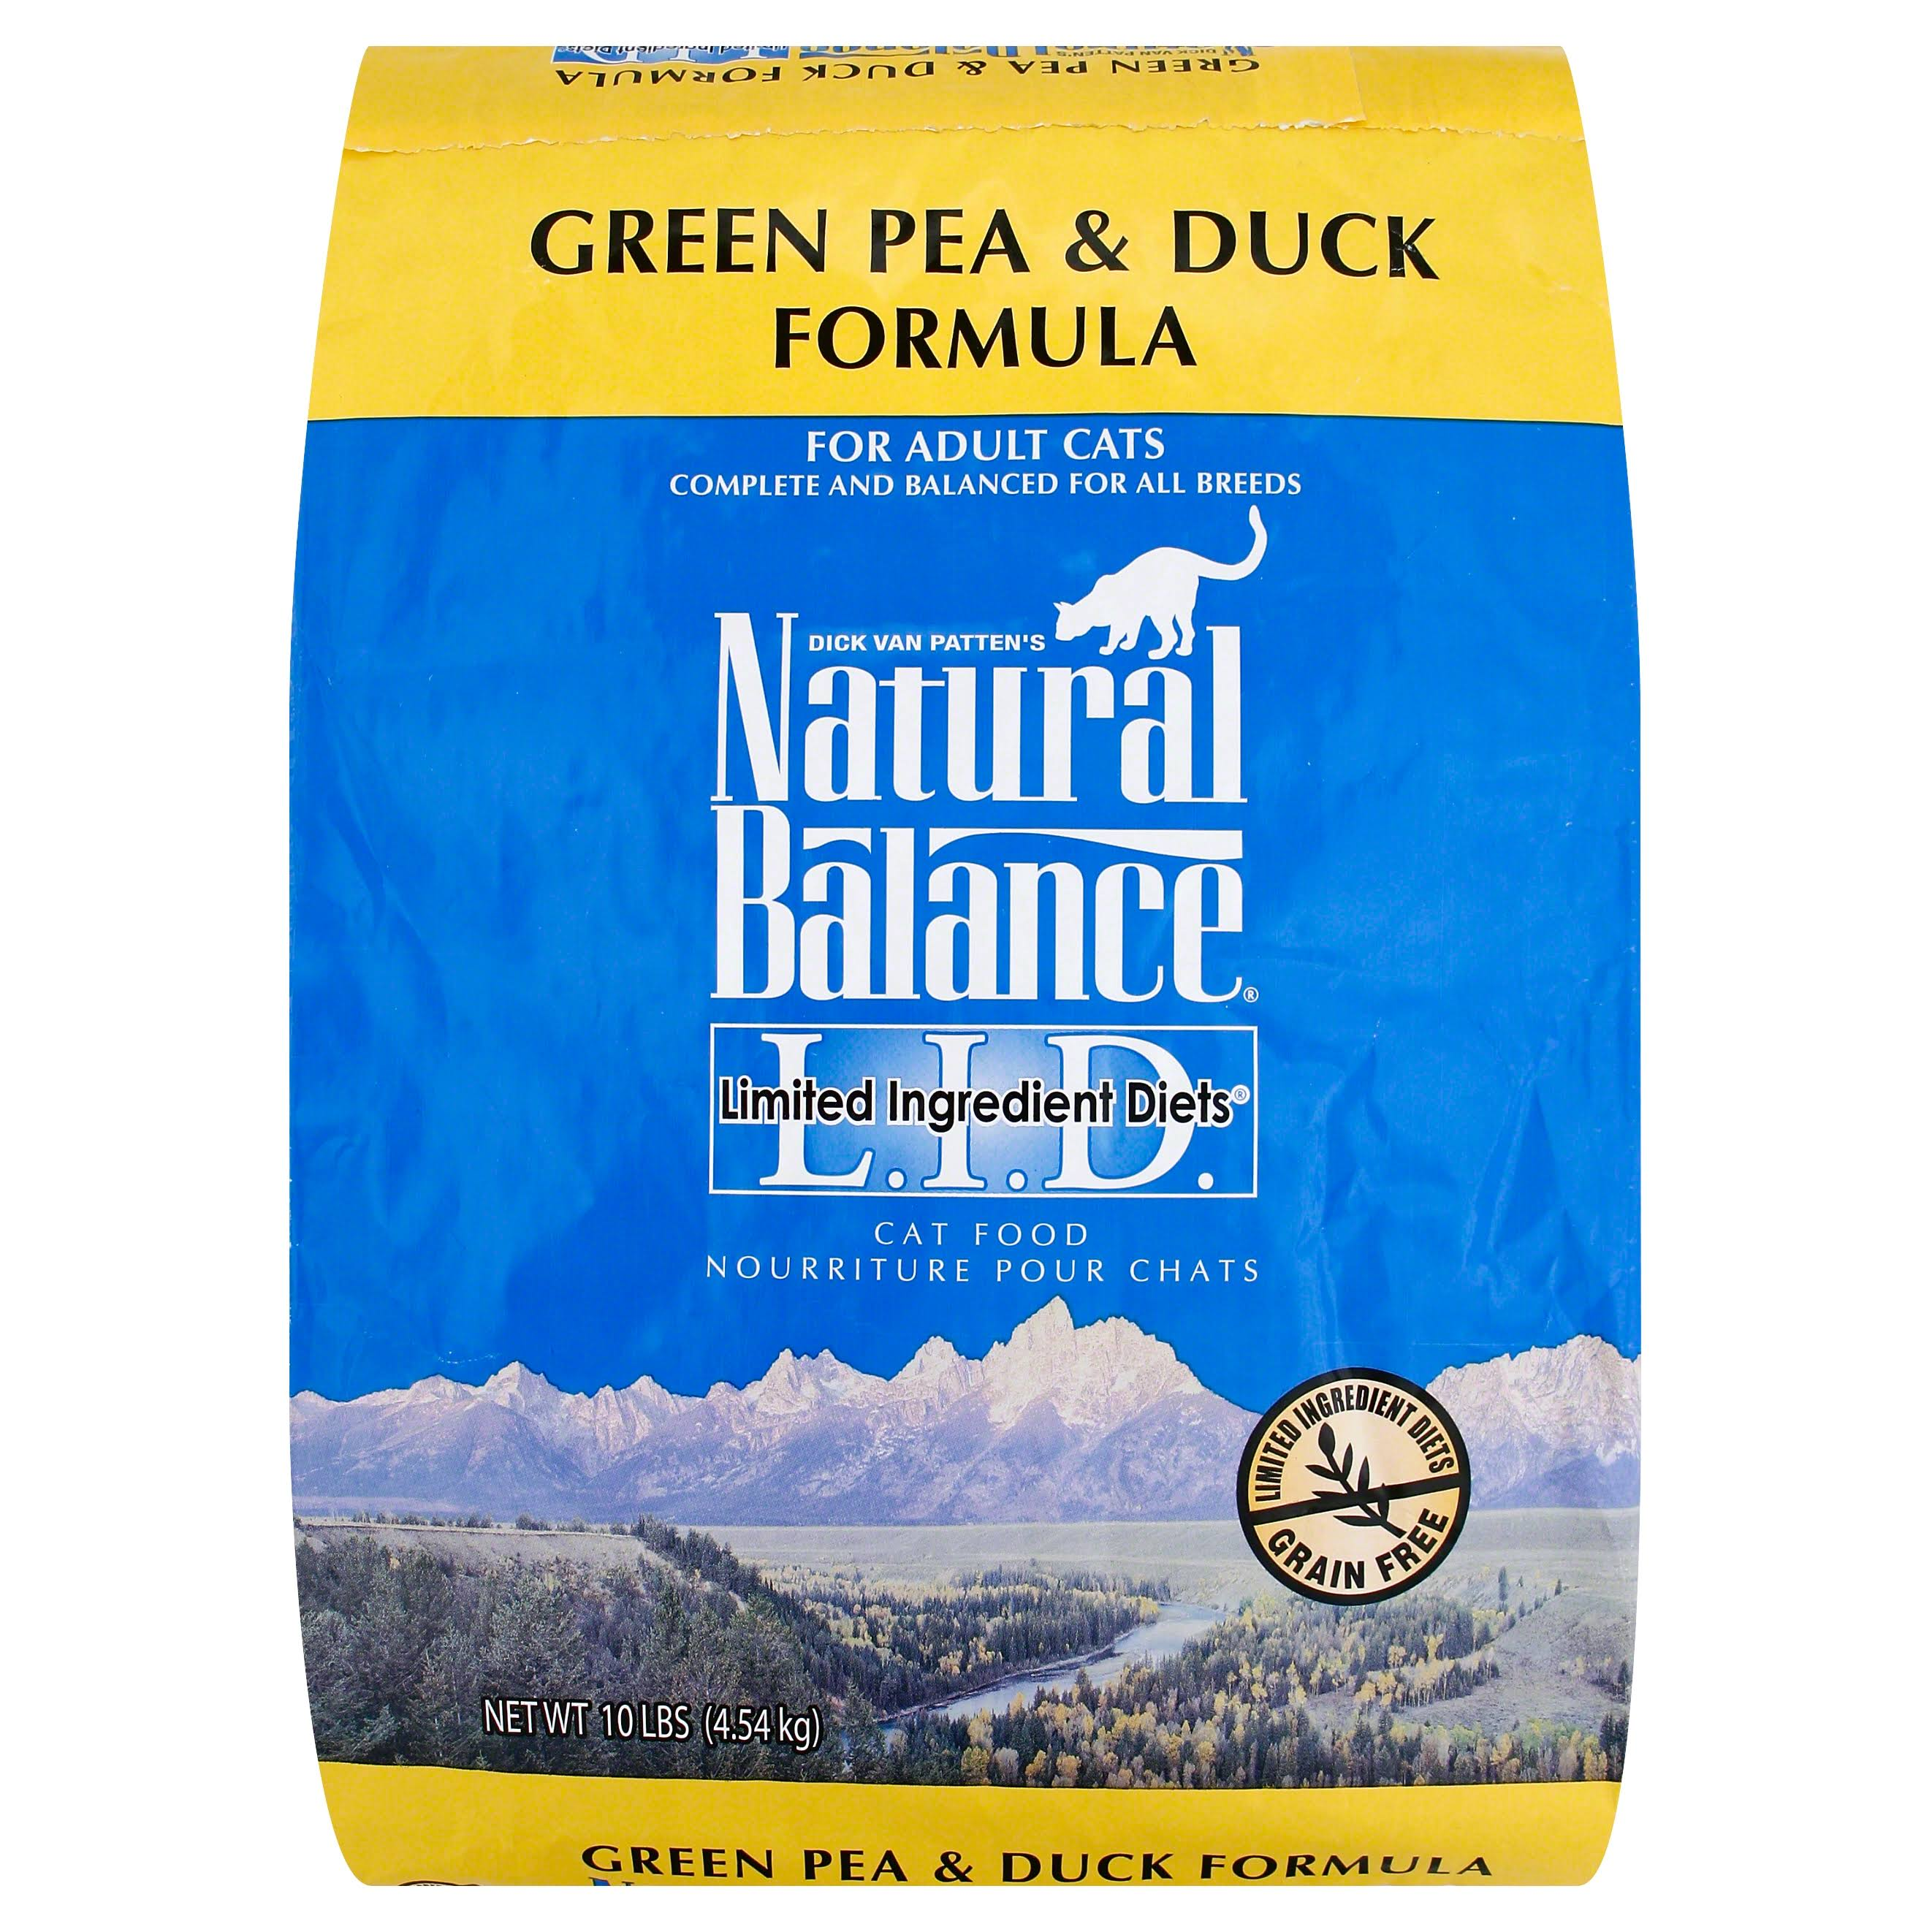 Natural Balance Dry Cat Food - Green Pea & Duck, 4.5 kg